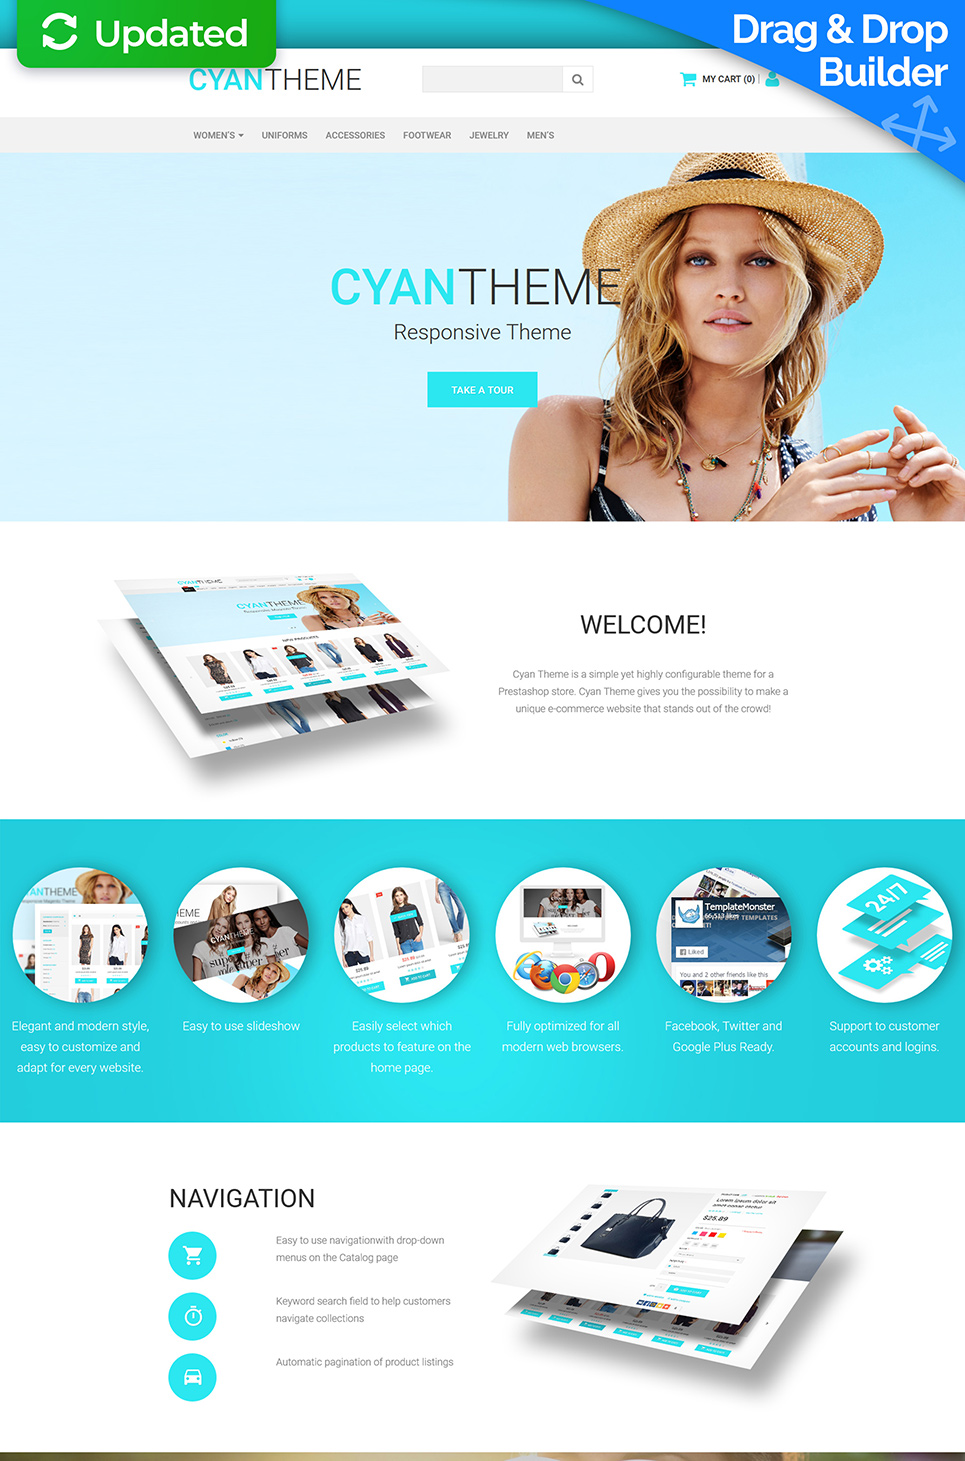 Cyan Theme Ecommerce Website Template - image